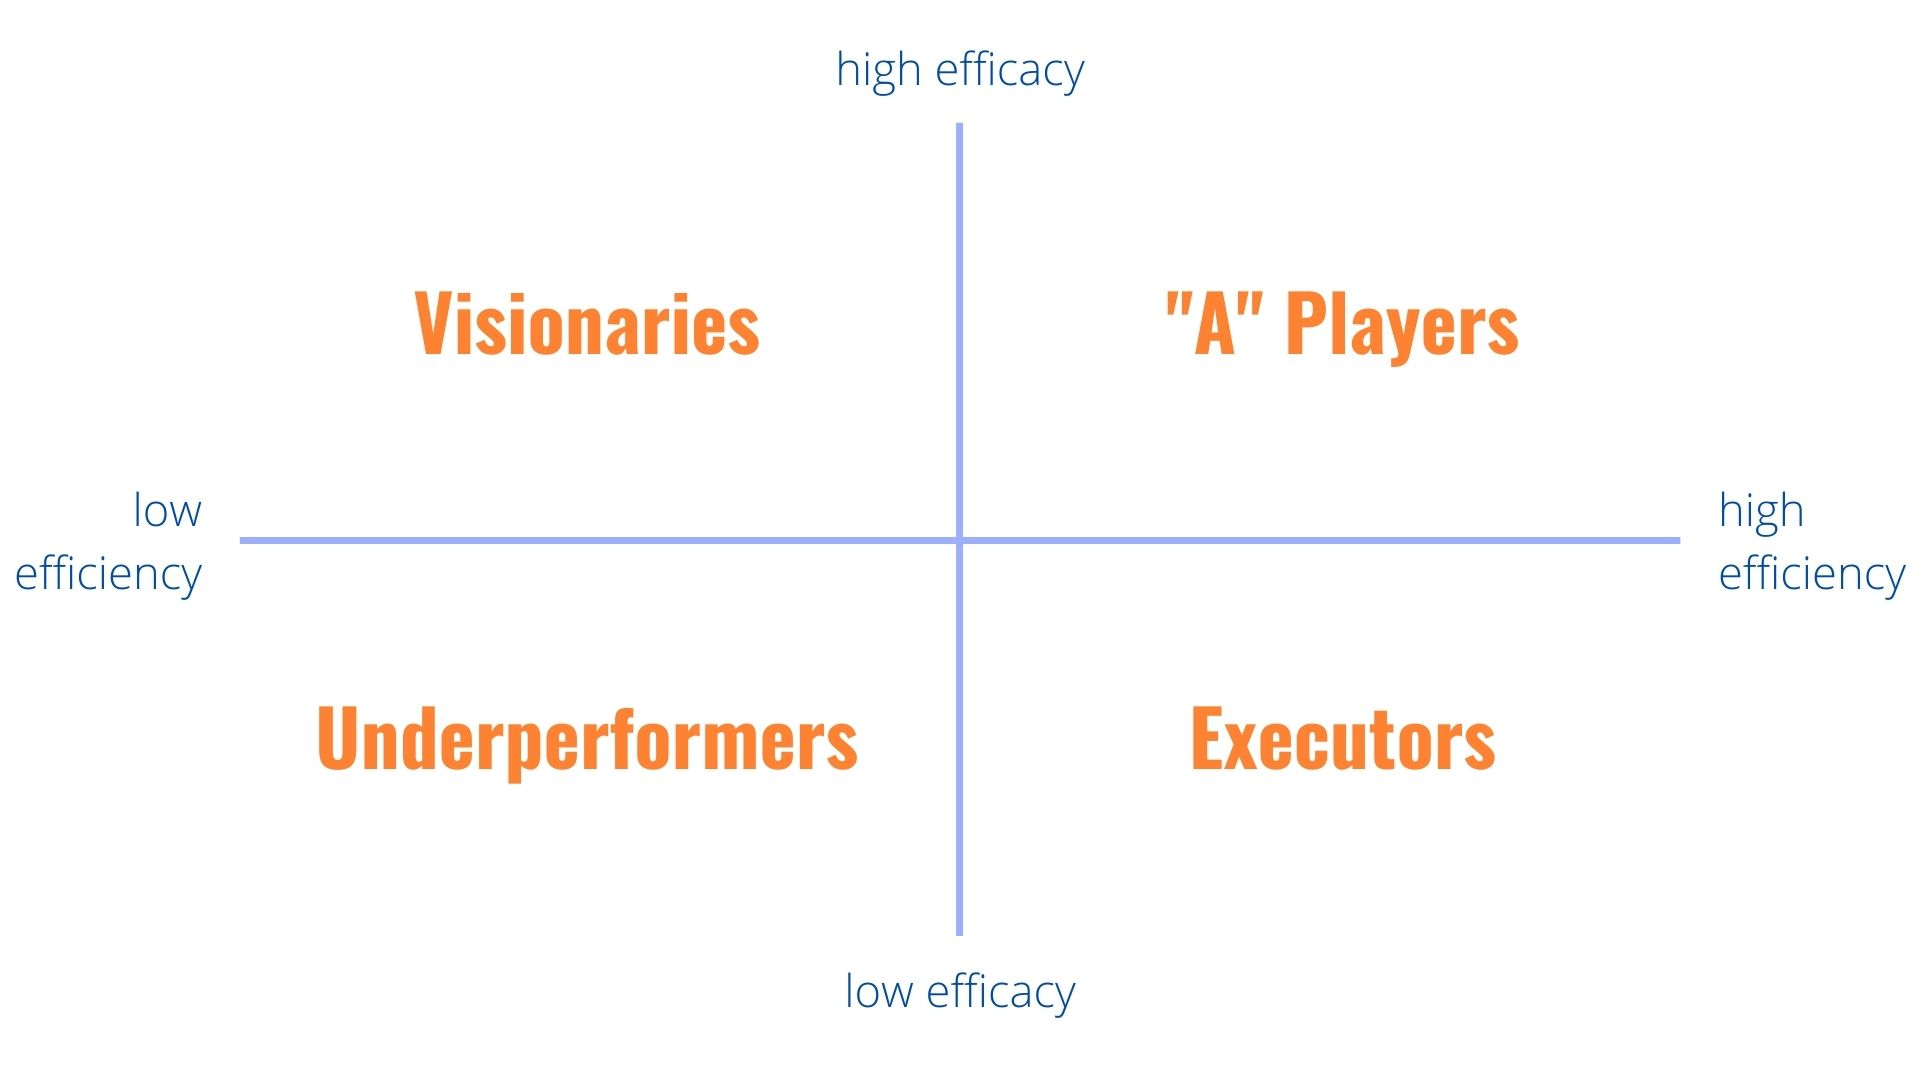 Efficiency and Efficacy quandrants